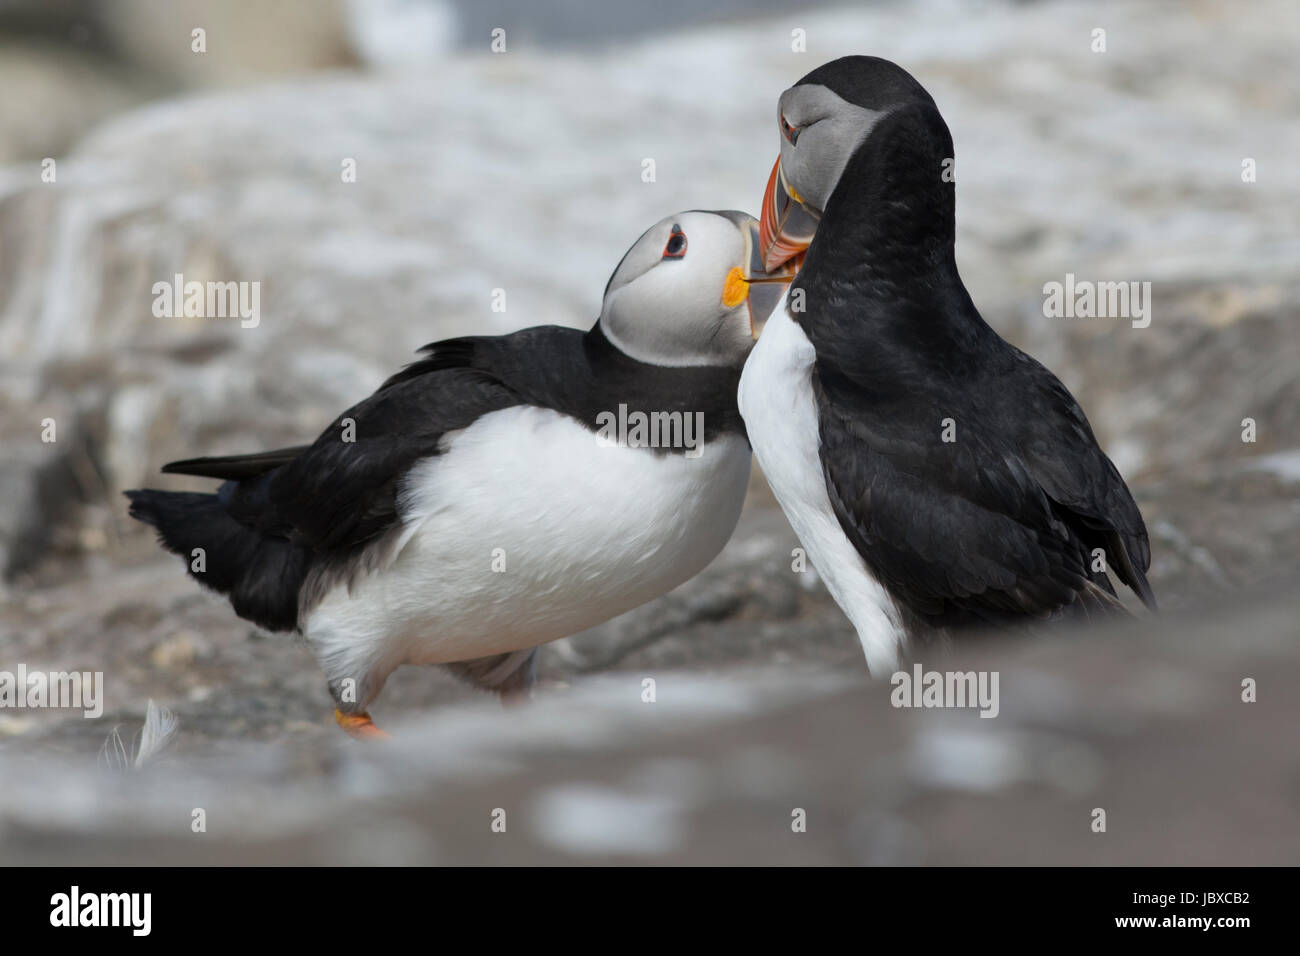 Pair of puffins billing - Stock Image